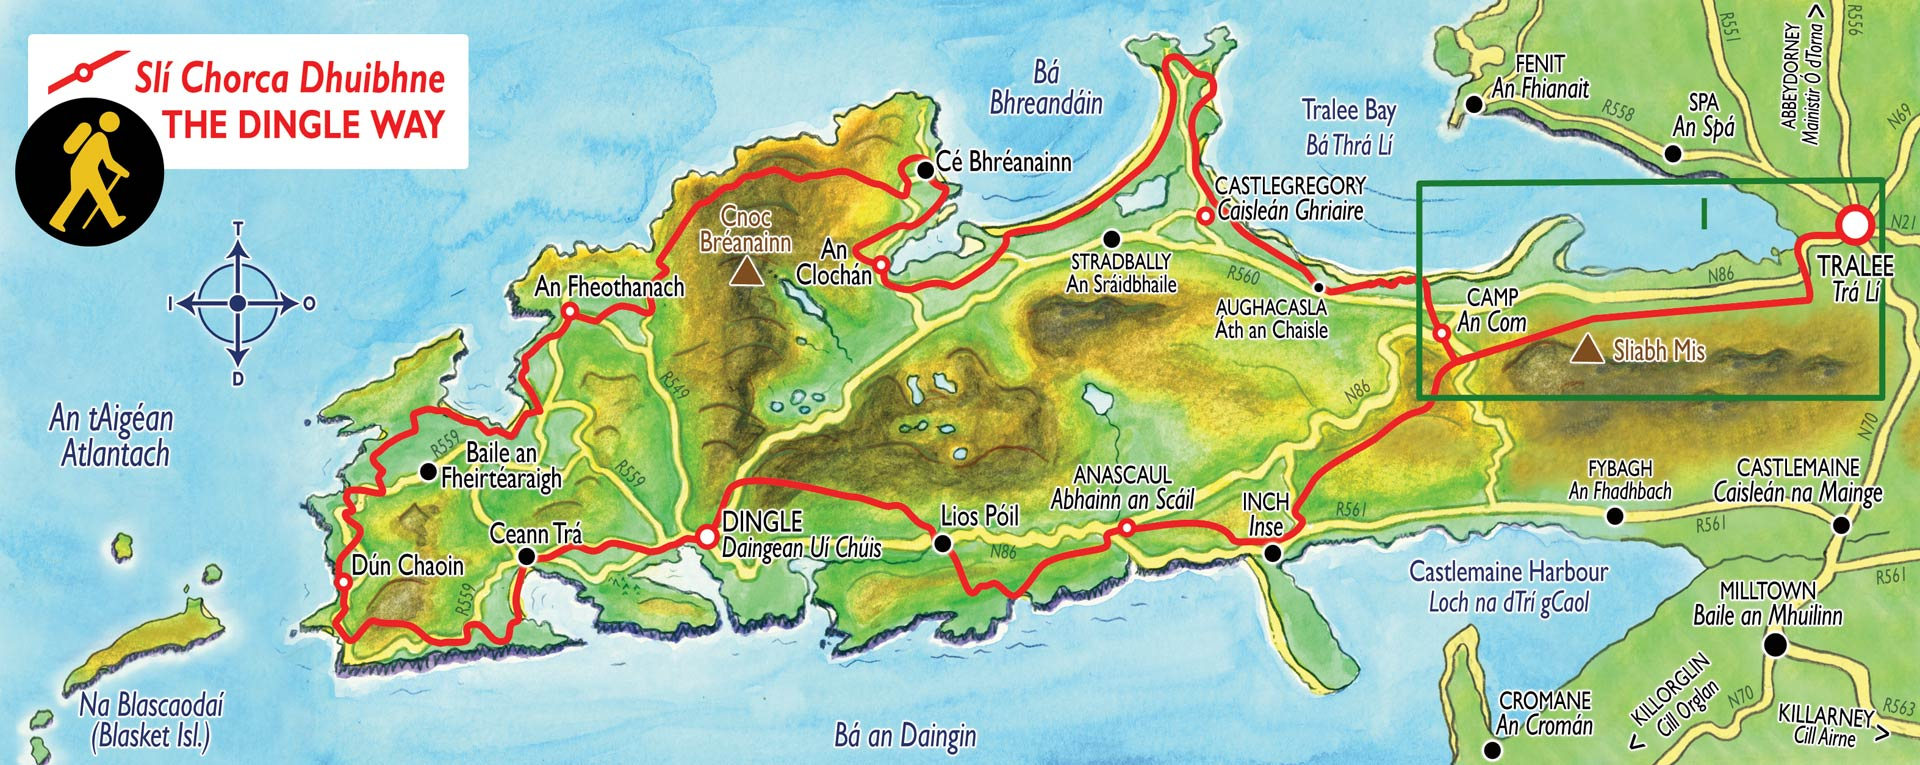 Map Of Ireland Showing Dingle.Tralee To Camp Section Of The Dingle Way Hiking Trail In Ireland